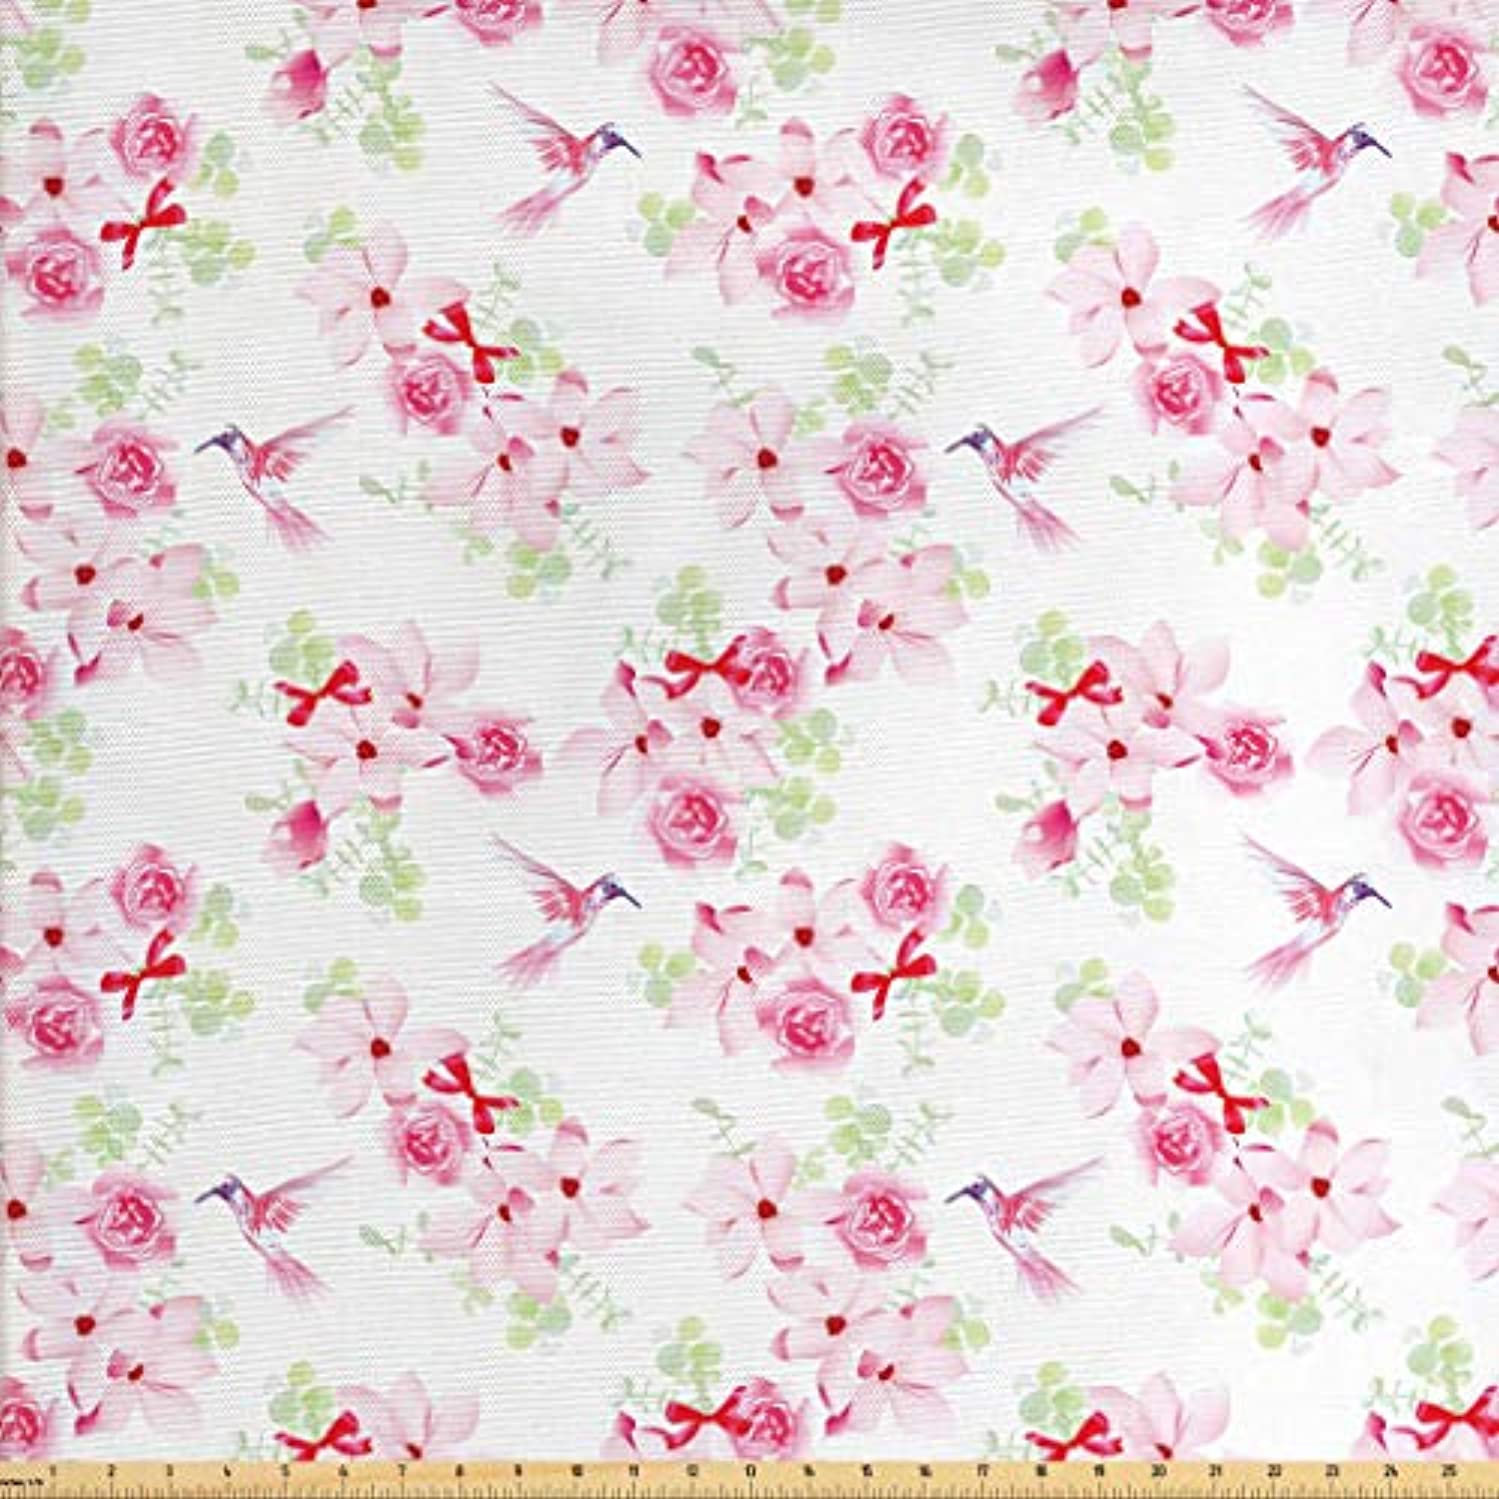 Lunarable Hummingbirds Fabric by The Yard, Hummingbirds and Bouquets with Magnolias Roses Pattern Floral Print, Decorative Fabric for Upholstery and Home Accents, 3 Yards, Pink Red Pale Green